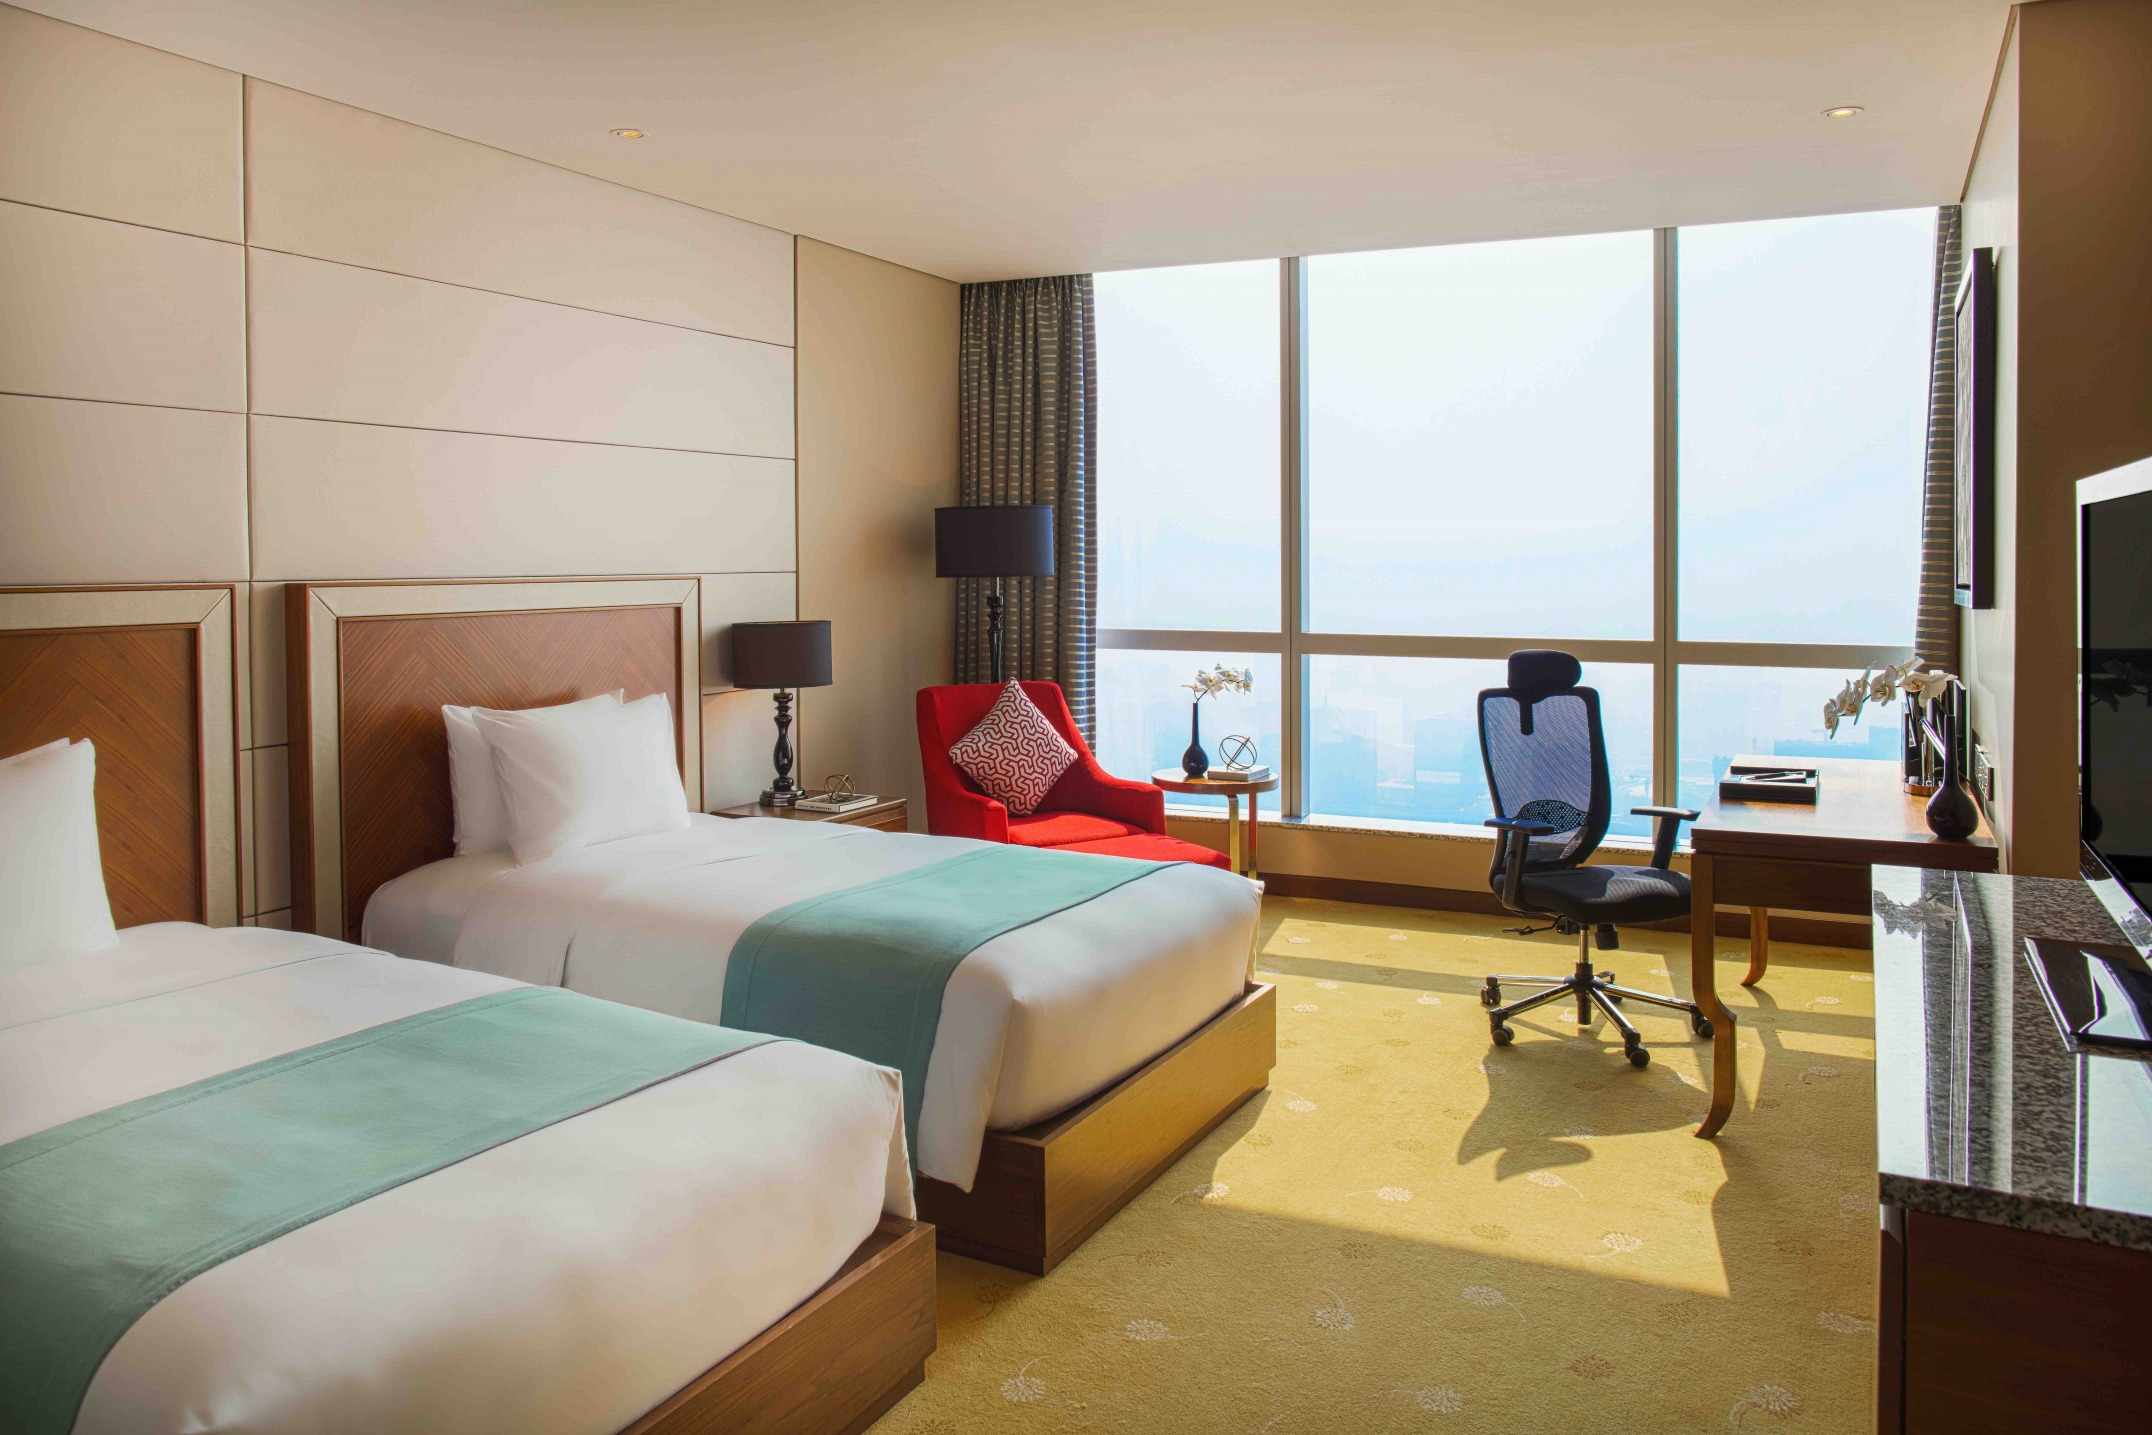 intercontinental hanoi twin deluxe room near ncc vietnam national convention center